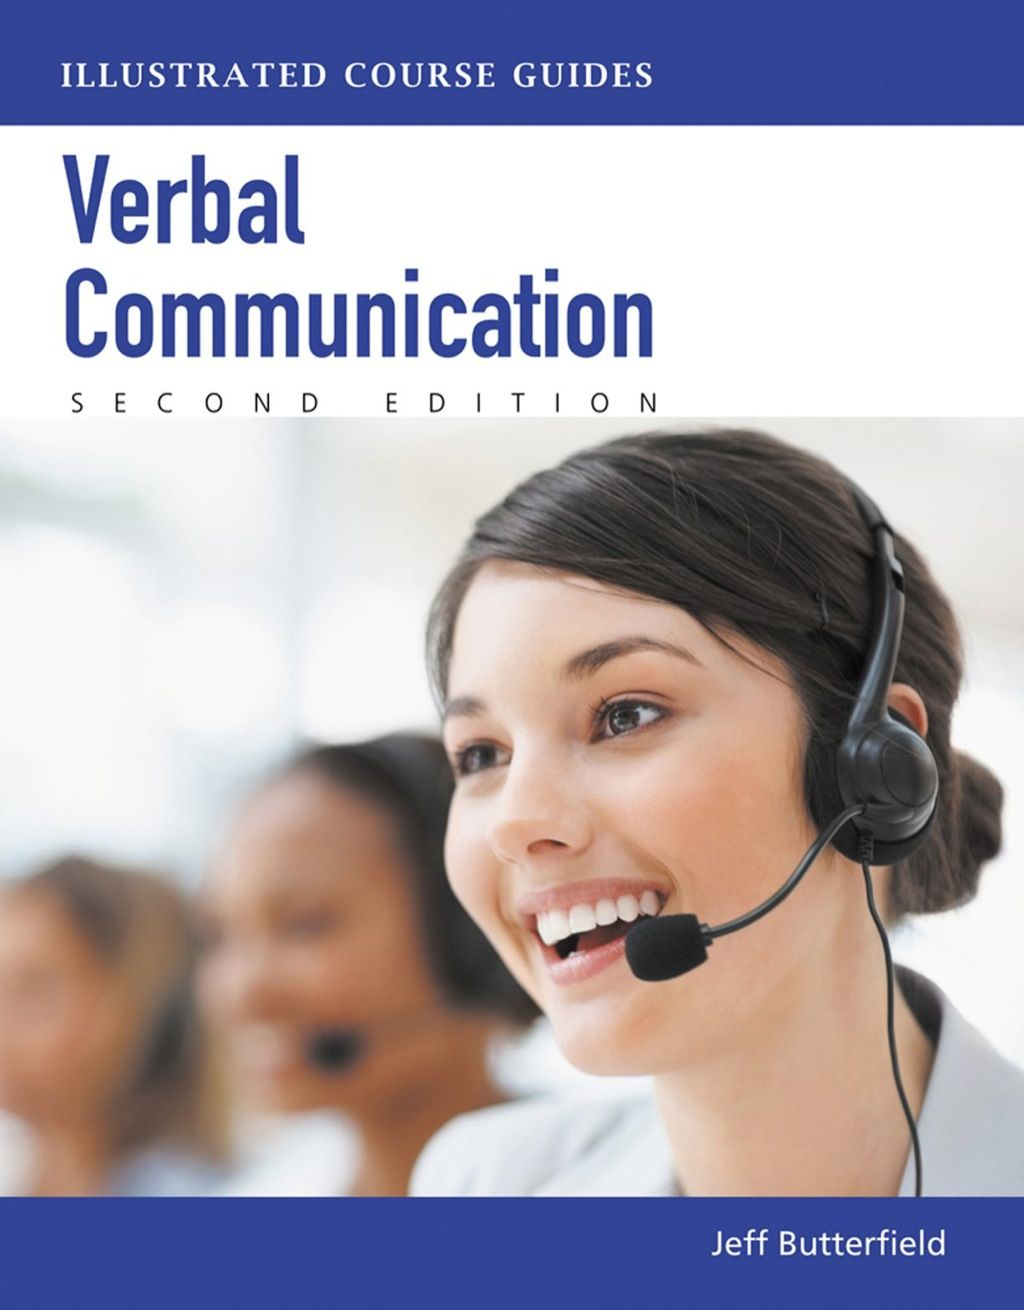 Verbal Communication Illustrated Course Guides Ebook